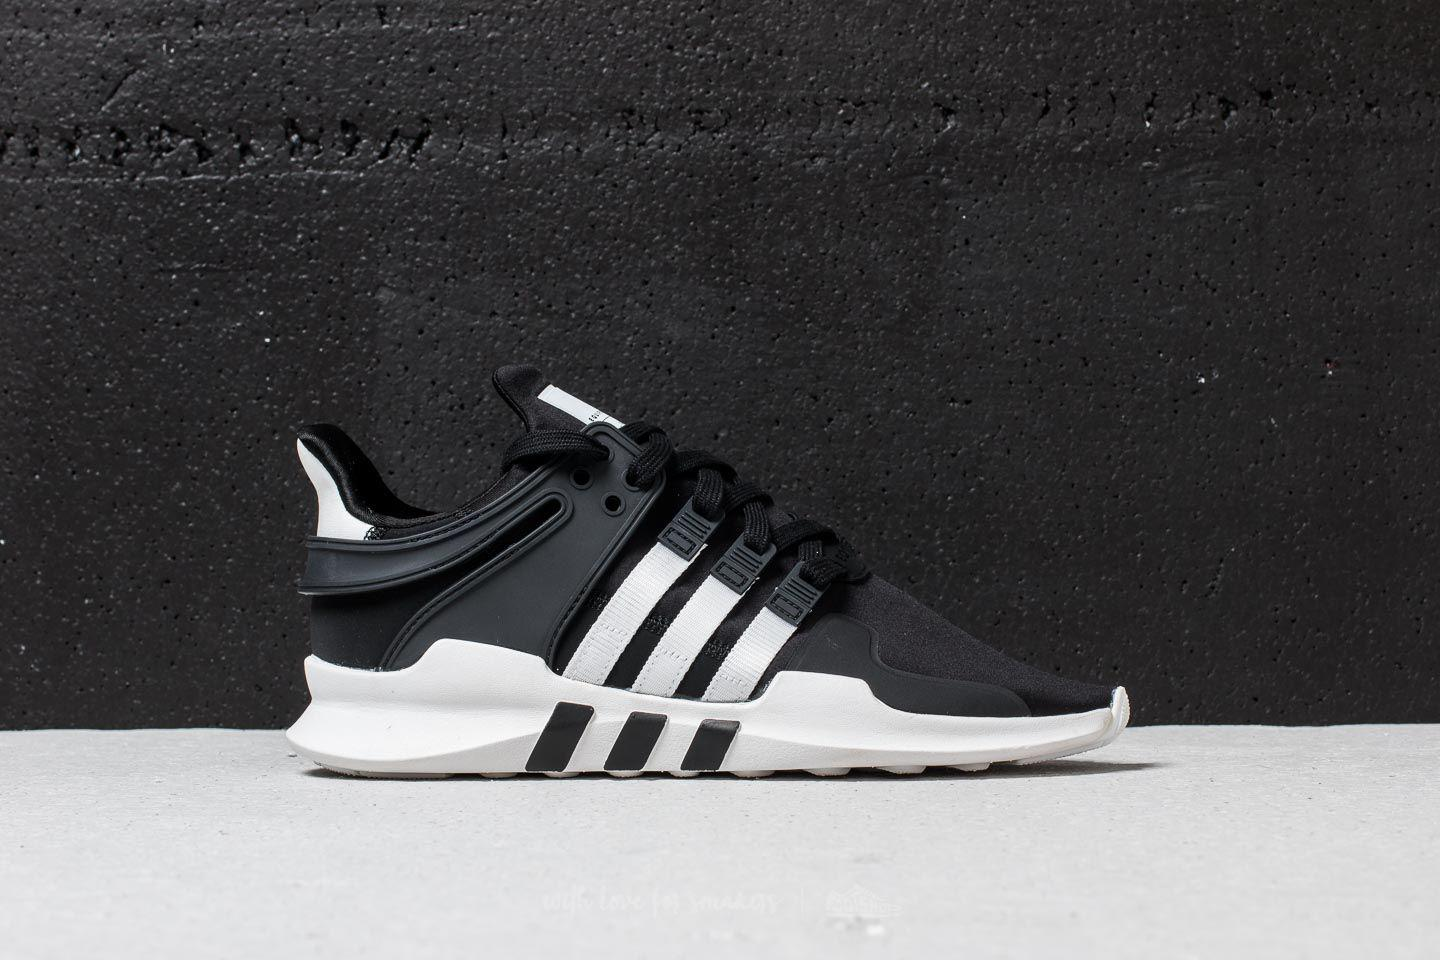 separation shoes 6ab9f 015bf Lyst - adidas Originals Adidas Eqt Support Adv Core Black Cl